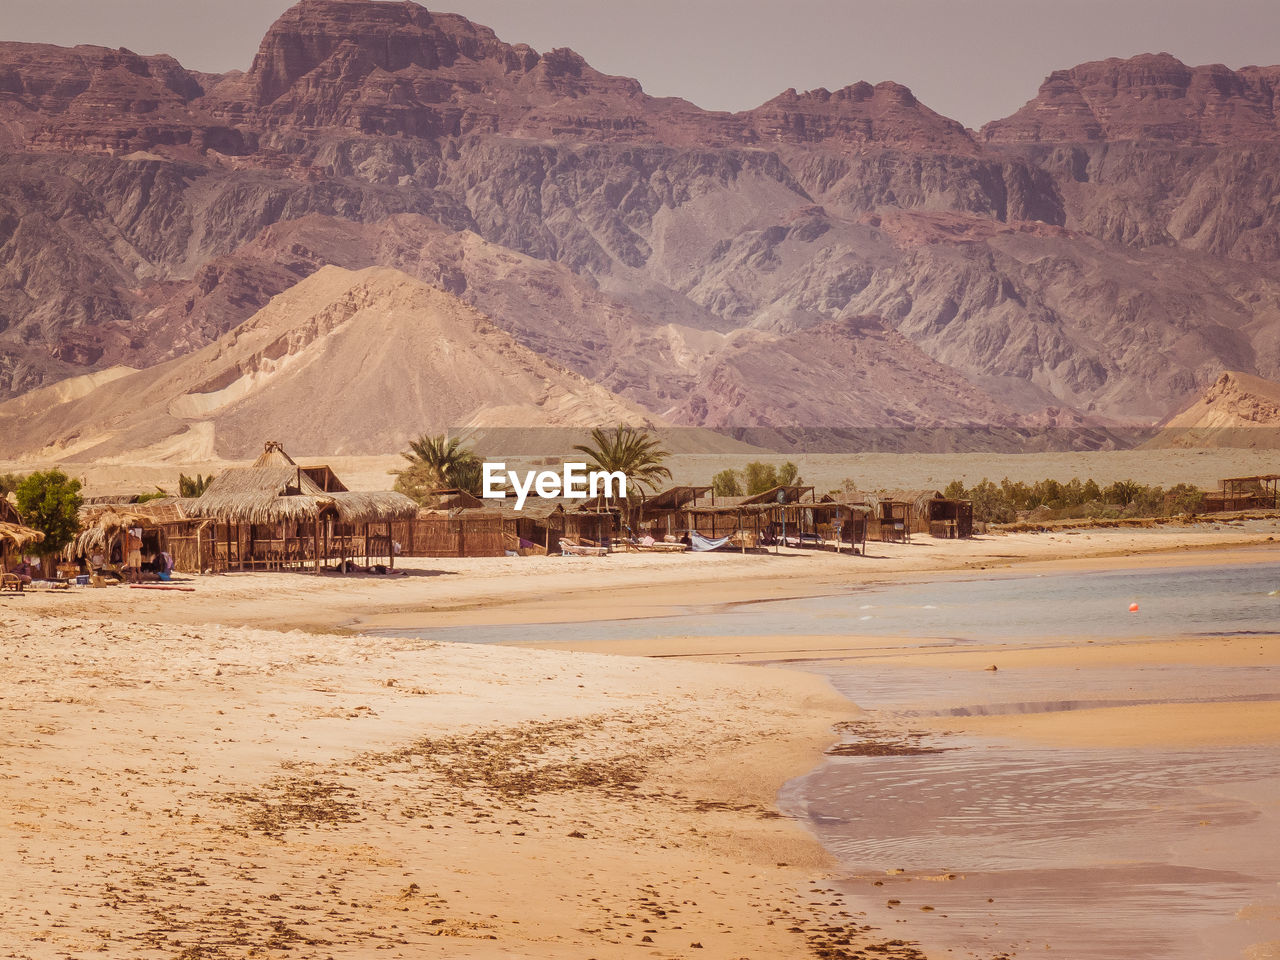 mountain, nature, scenics, outdoors, arid climate, beauty in nature, tranquil scene, desert, sand, day, tranquility, landscape, physical geography, mountain range, no people, salt - mineral, sky